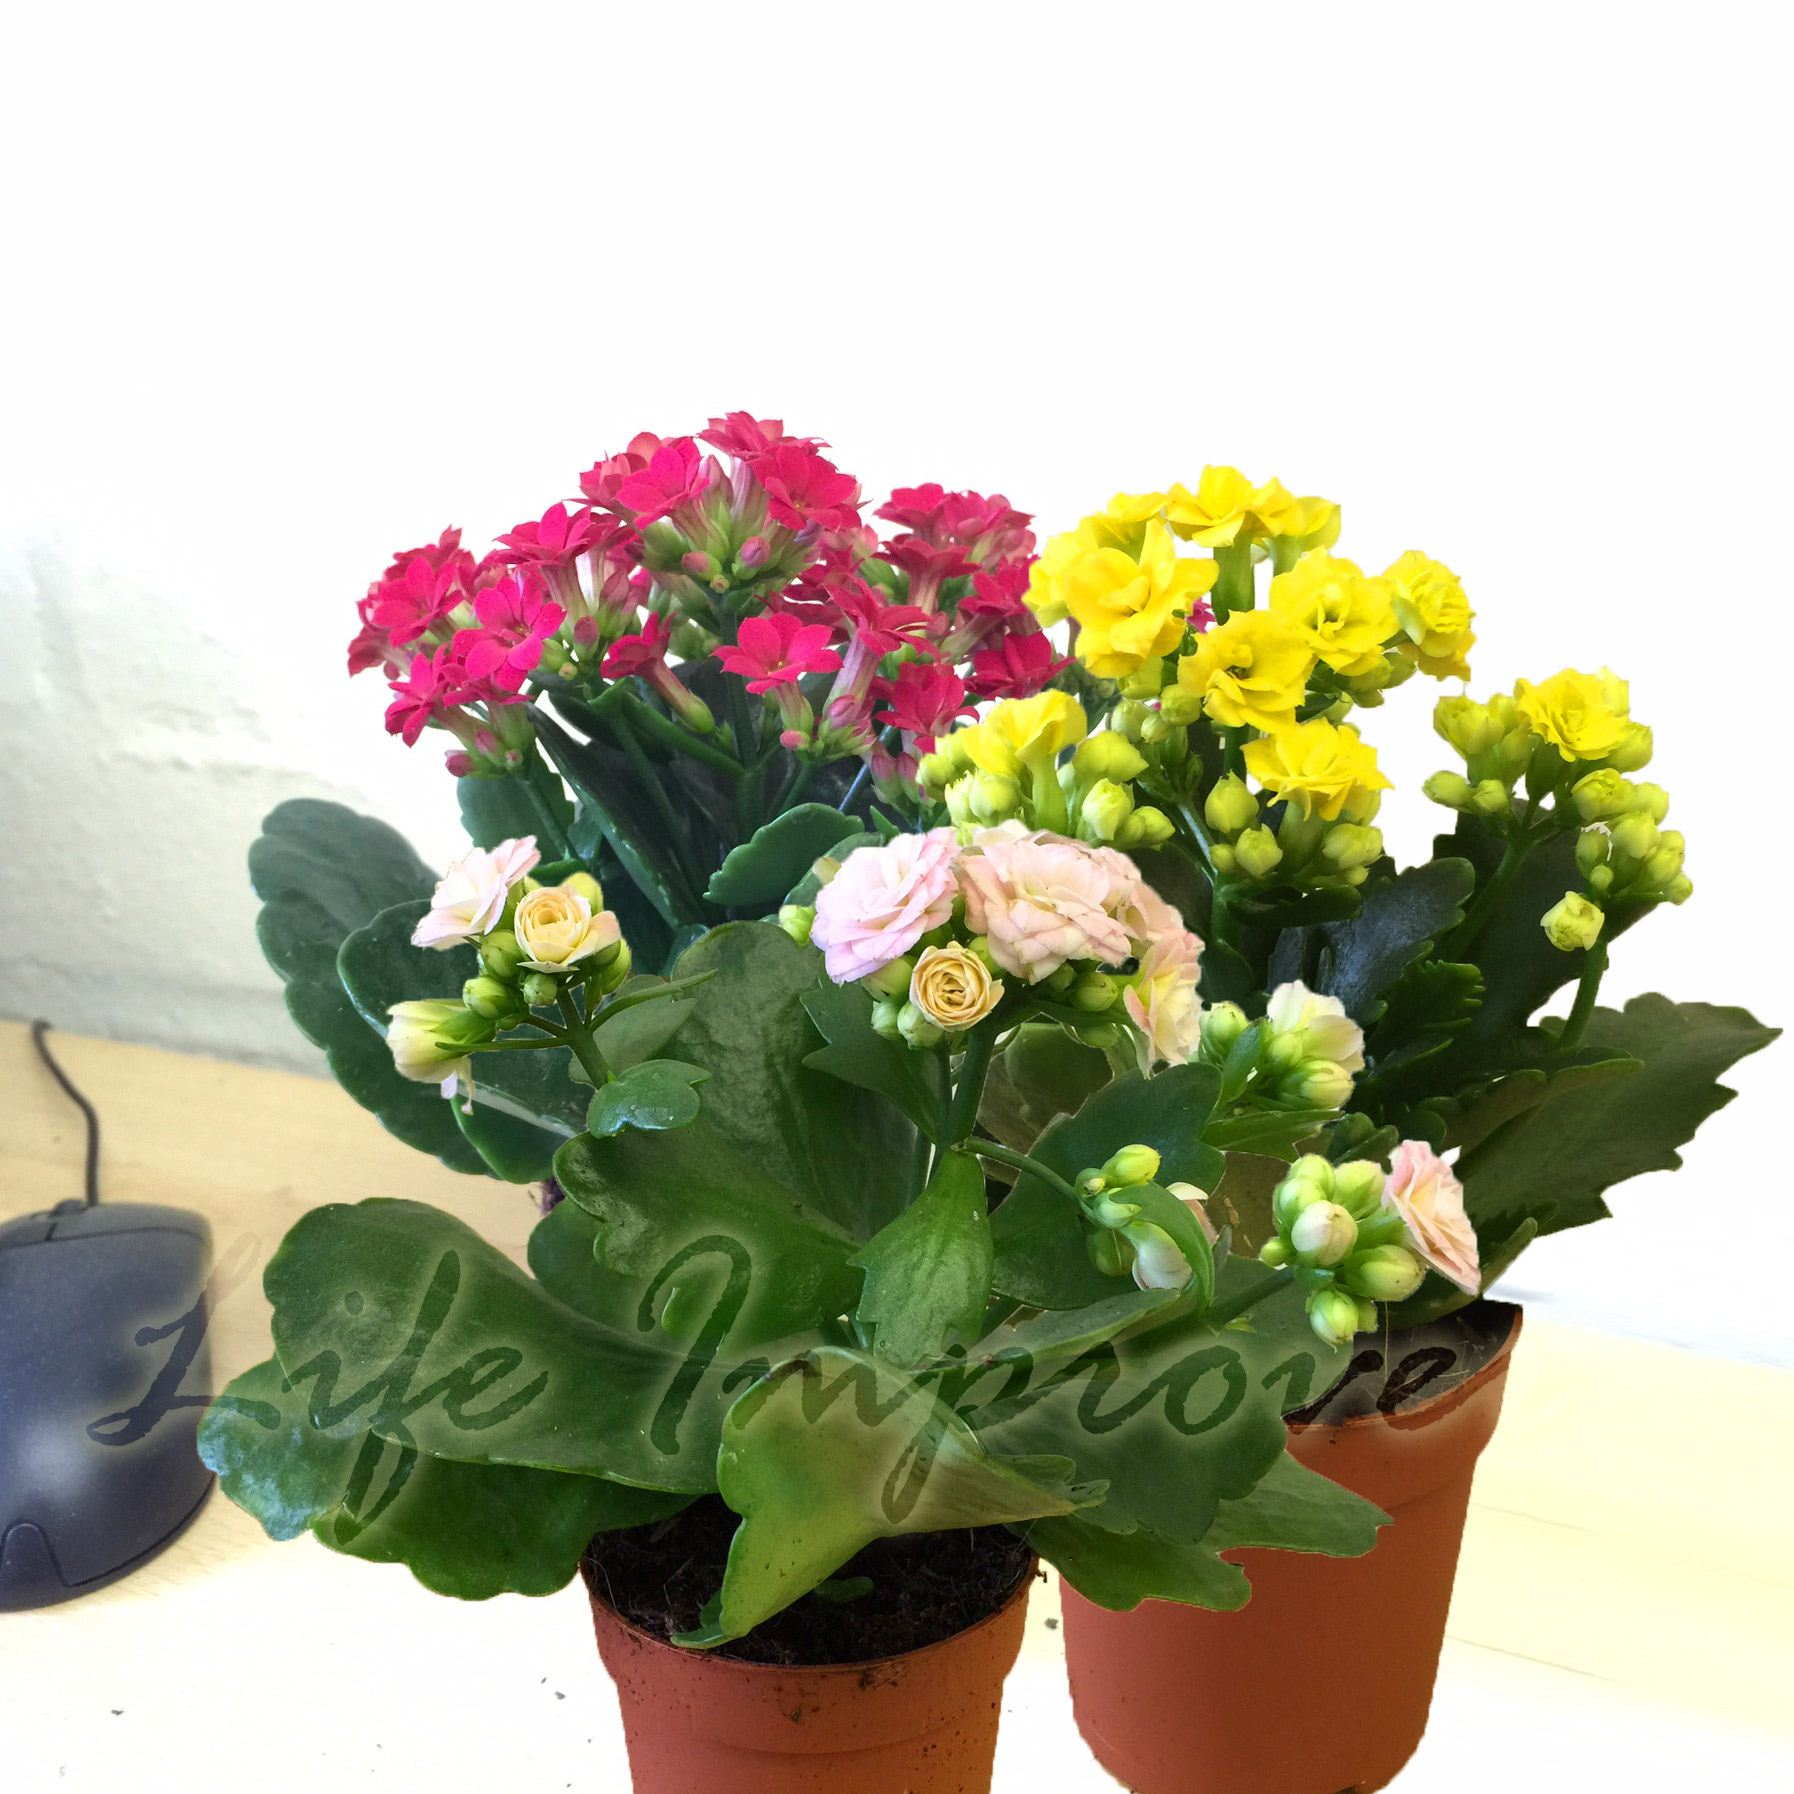 2 3 flaming katy florist calandiva kalanchoe blossfeldiana house plant in pot ebay. Black Bedroom Furniture Sets. Home Design Ideas